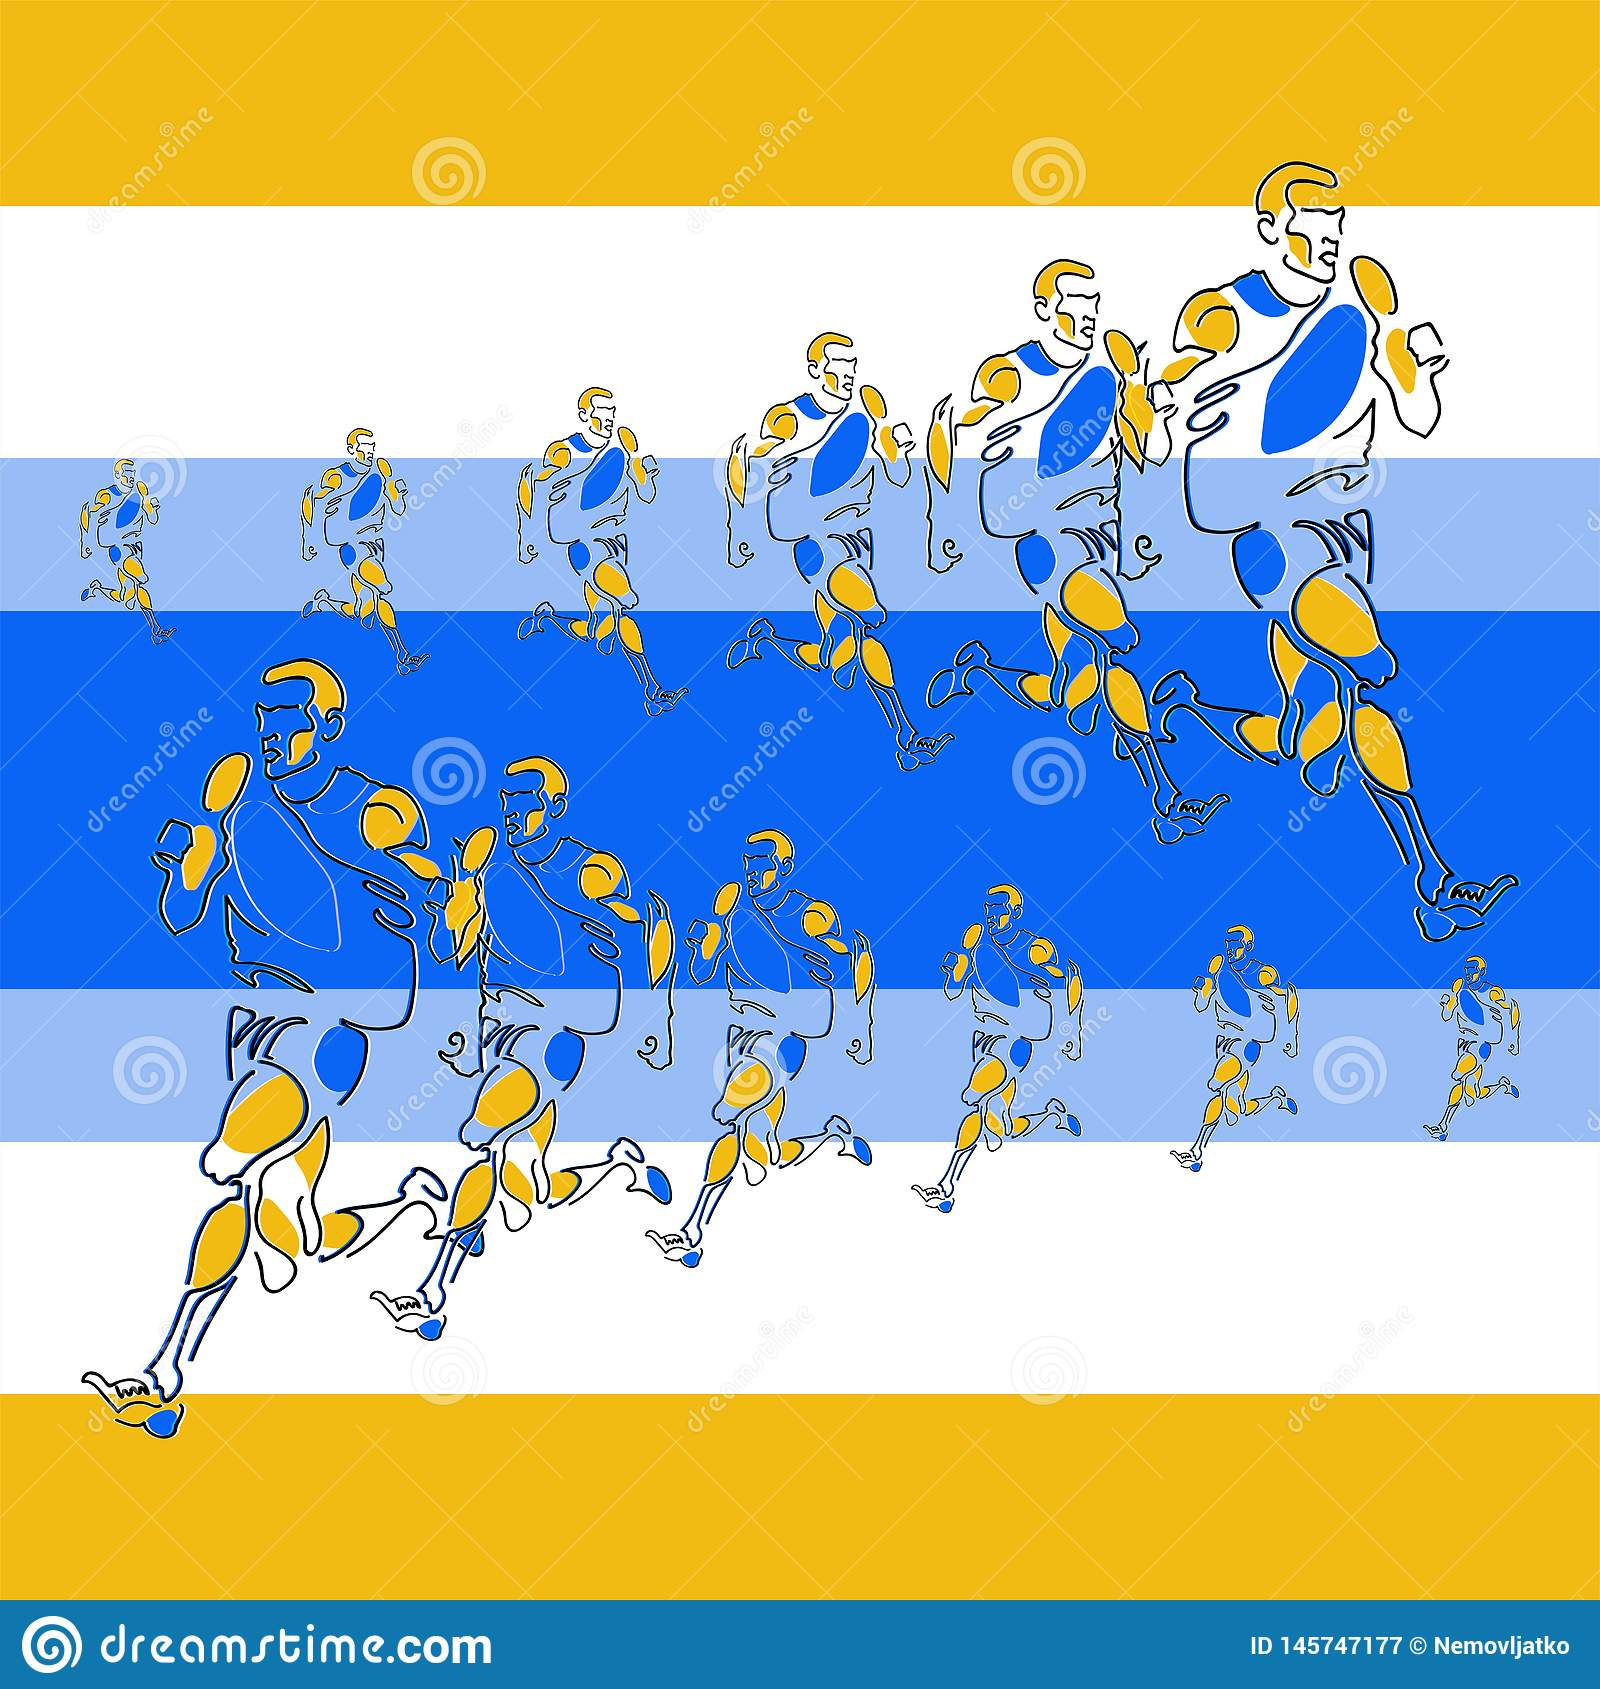 Vector linear pattern of stylized figures of athletes